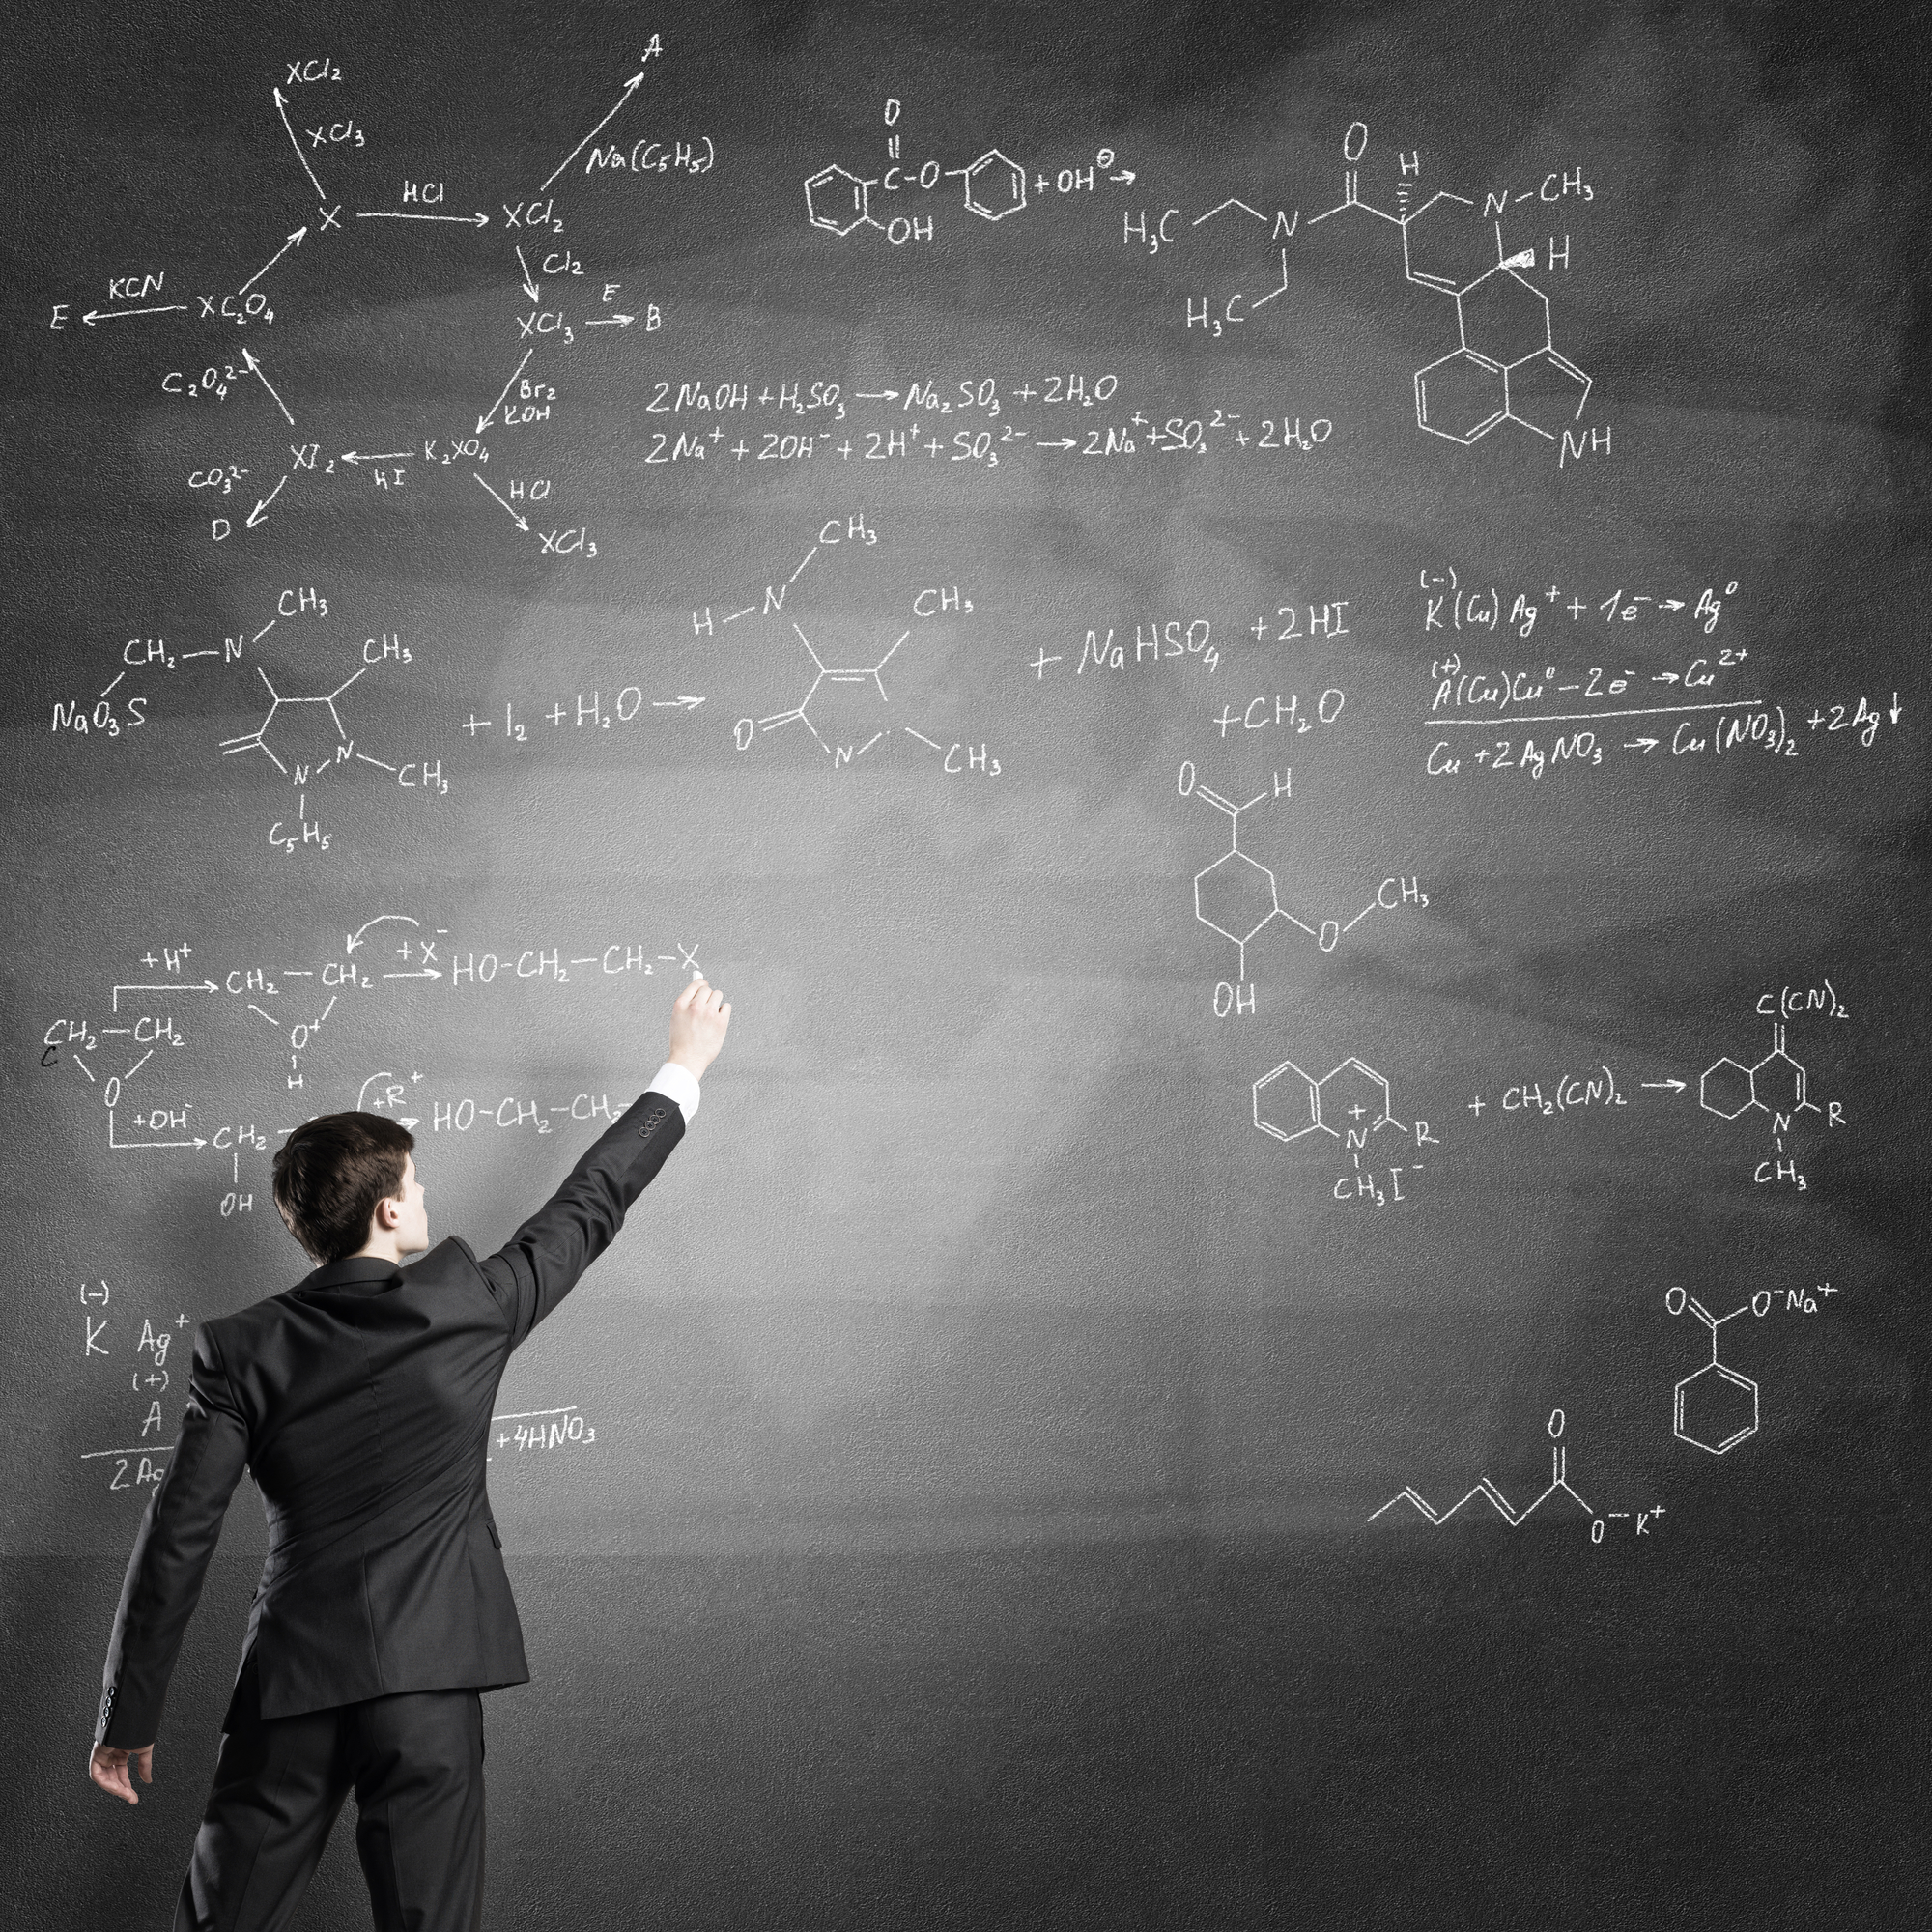 Young man in suit drawing chemistry formulas on chalkboard